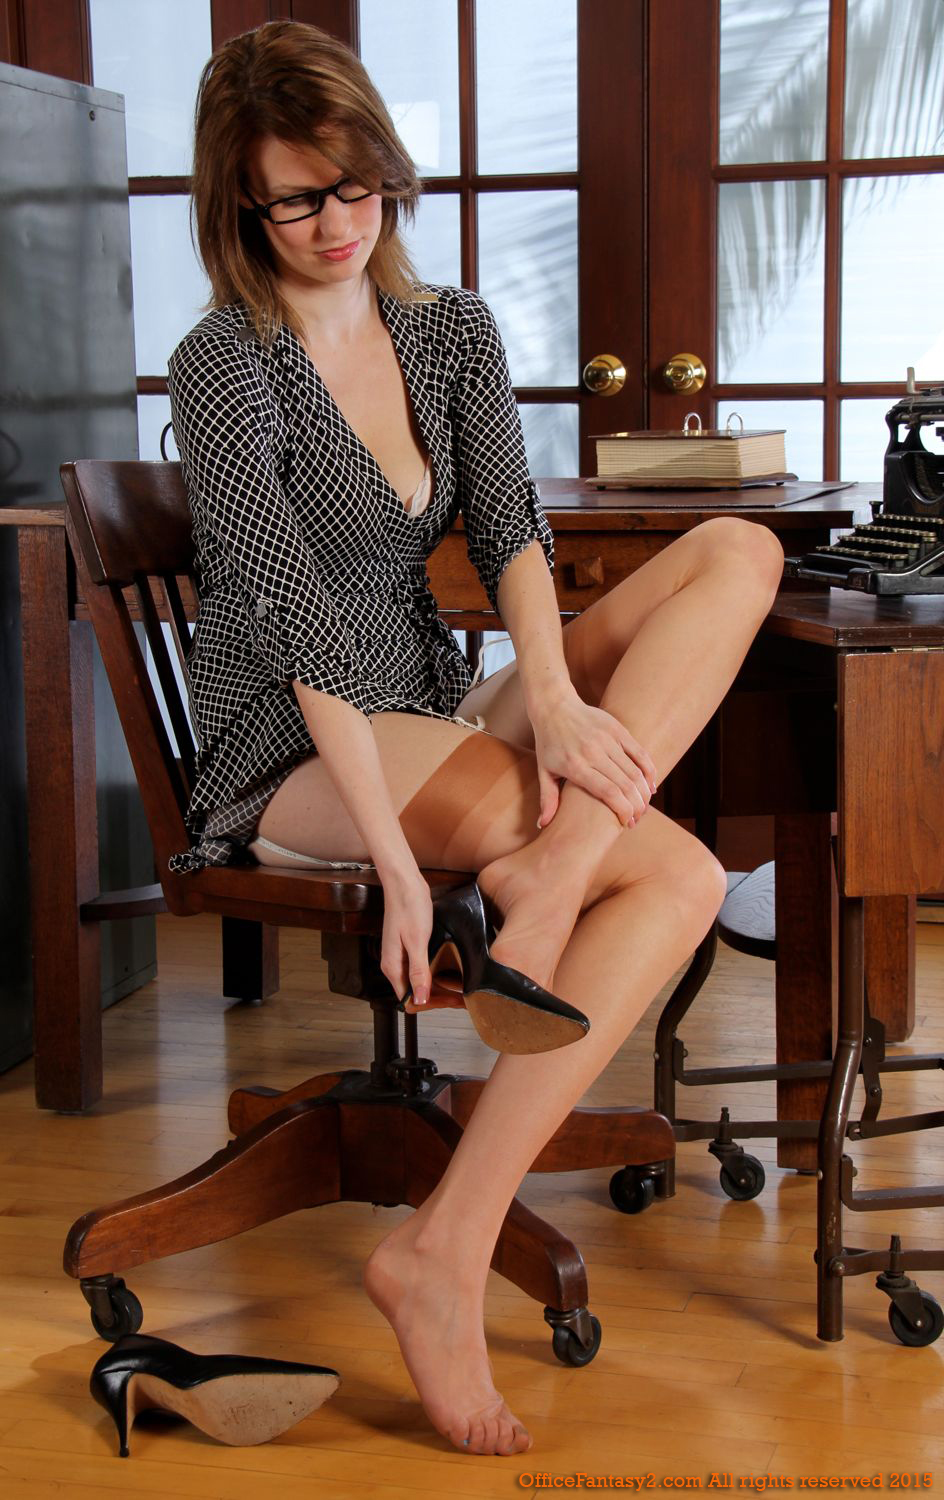 [Office Fantasy] Jessica02